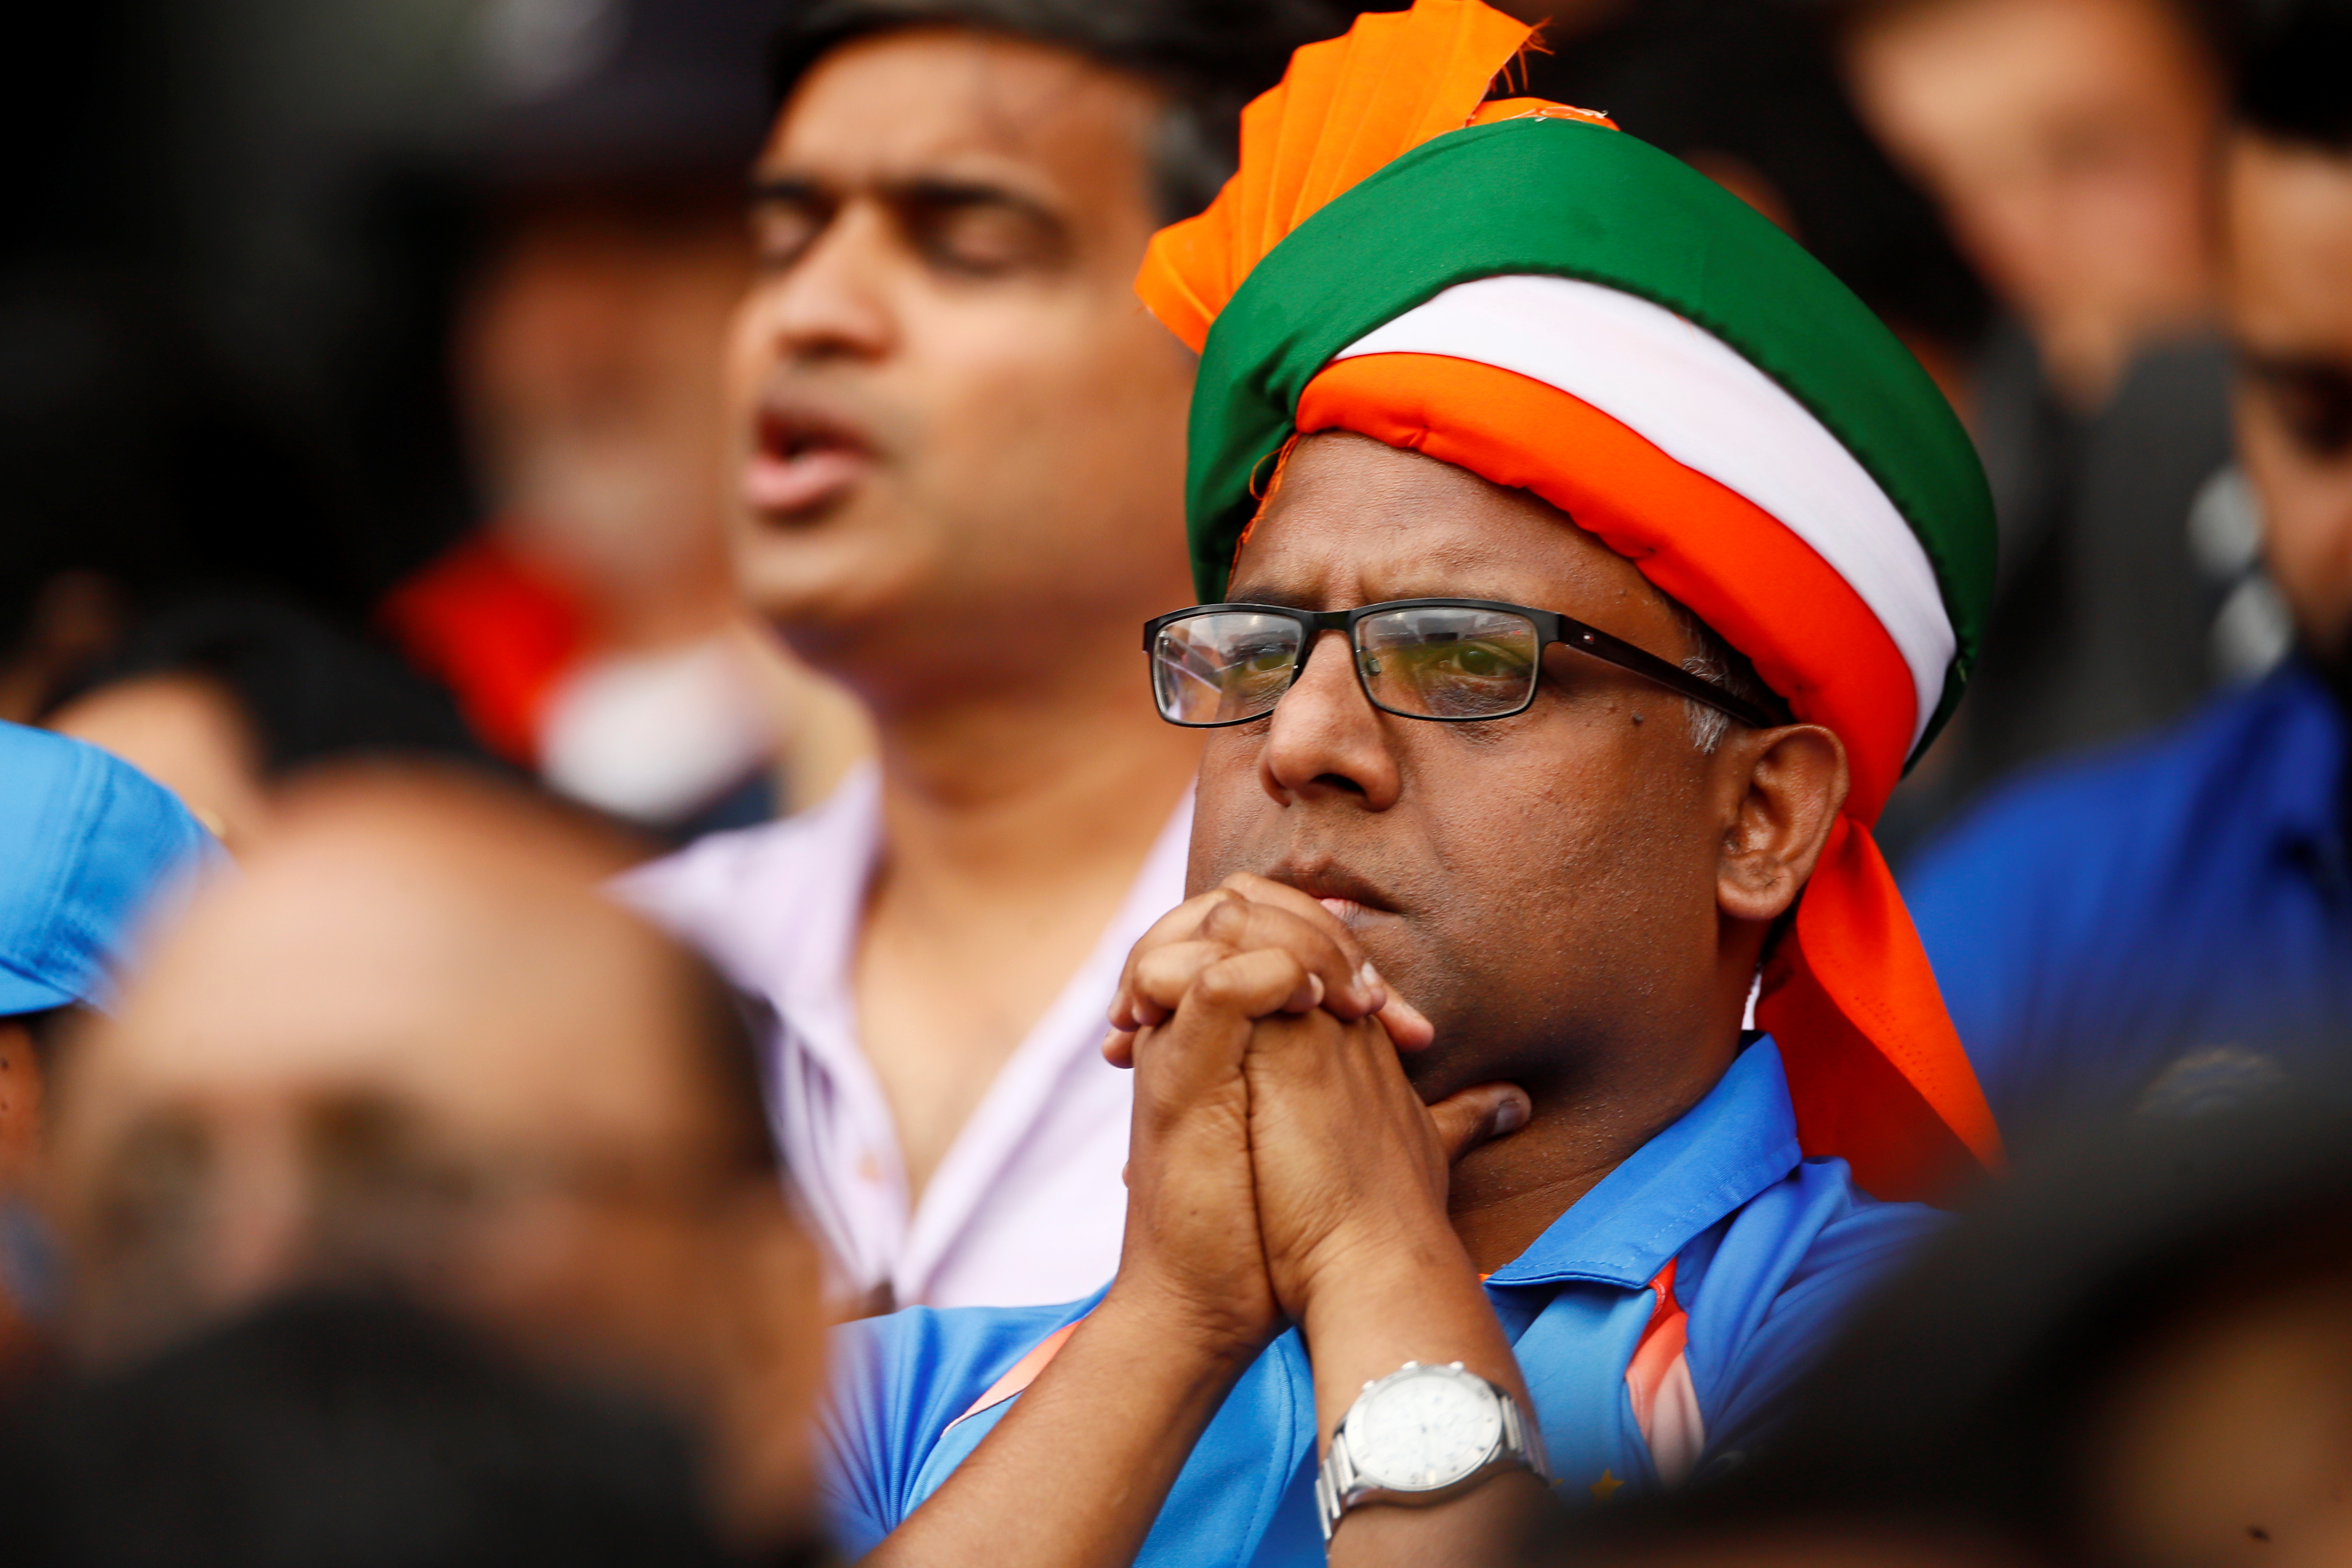 Indian fans hurt by World Cup exit but proud of team | The